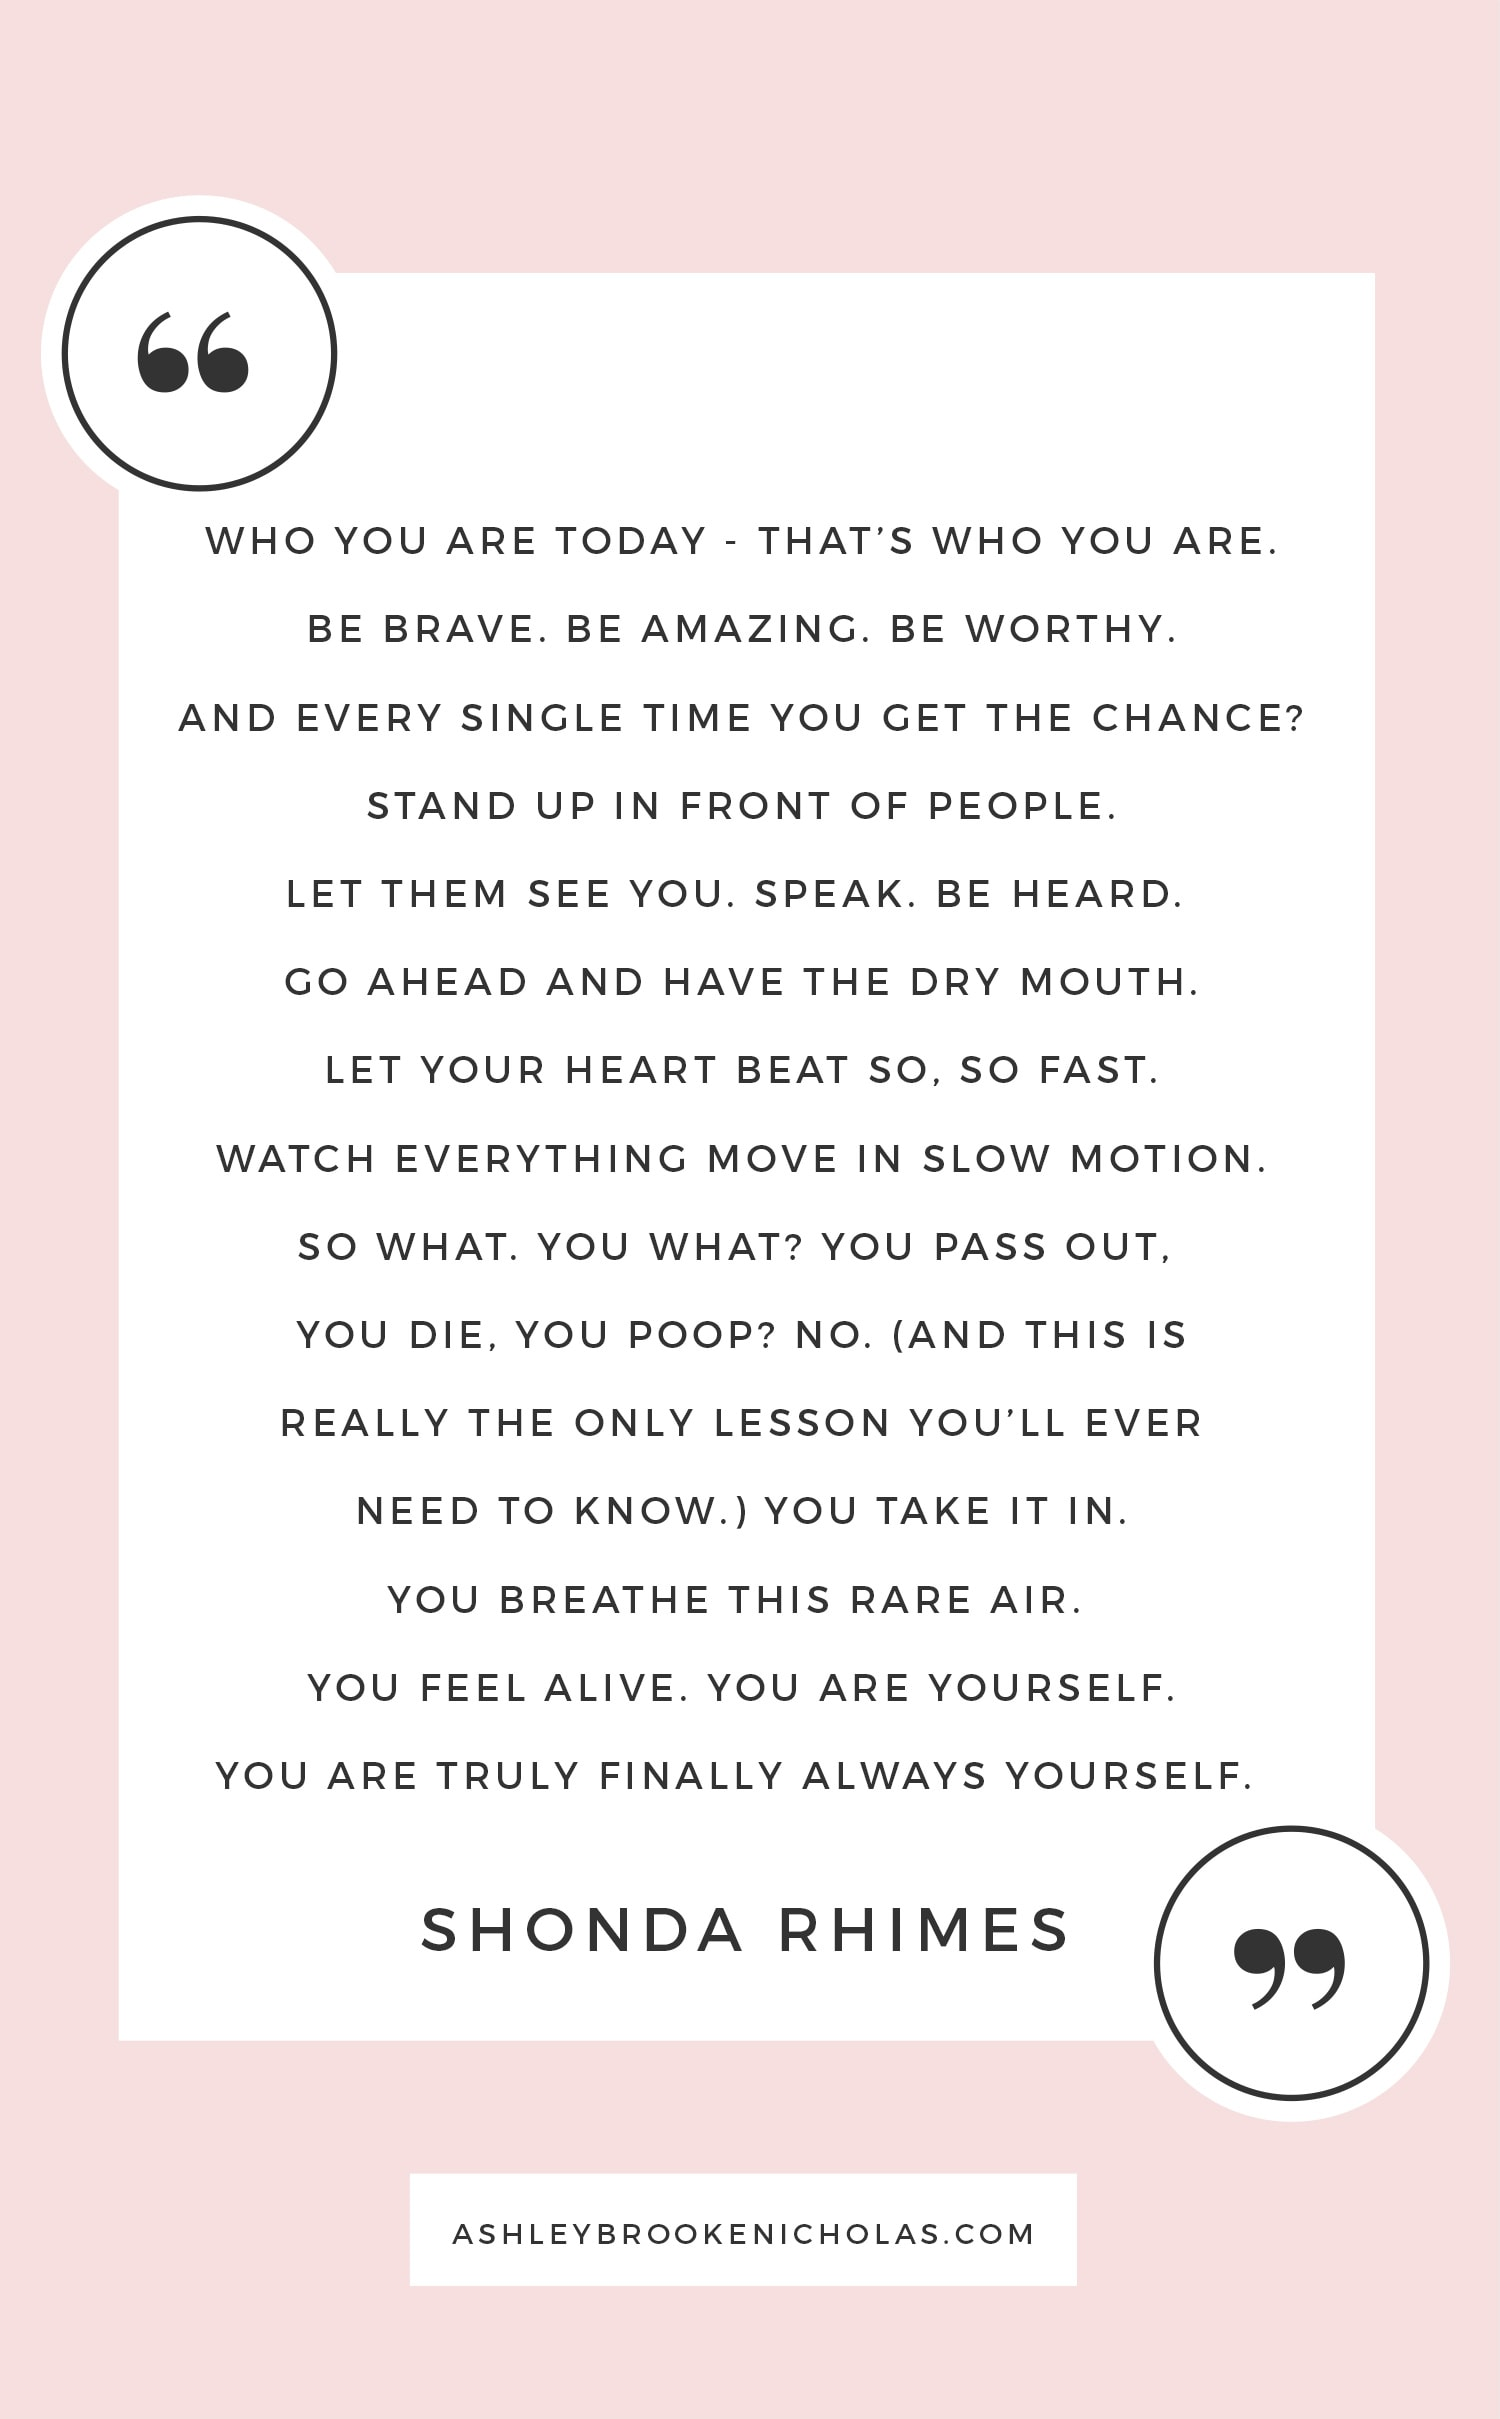 10 Shonda Rimes Quotes To Help You Kick Butt Ashley Brooke Nicholas